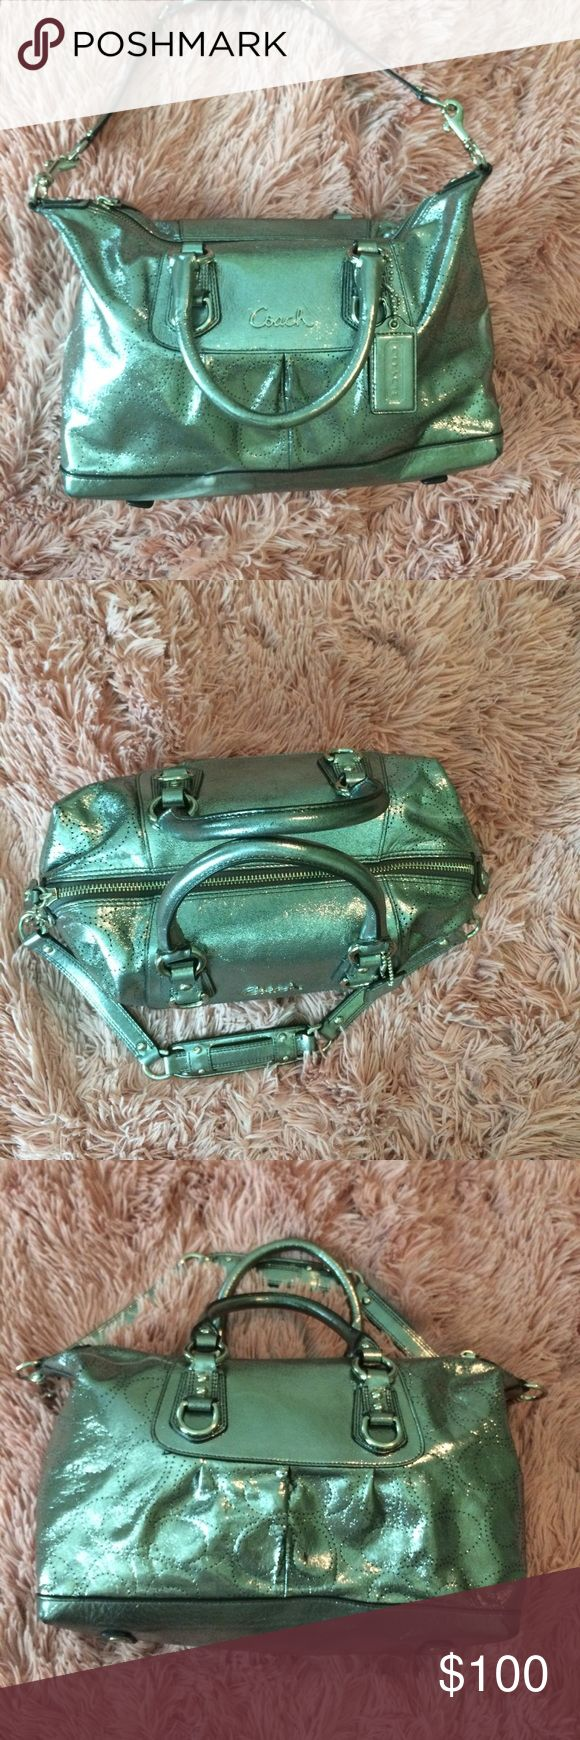 Make an offer!! Hello! Looking to sell my coach shoulder bag, it has minor damage to the bottom and the back of the bag as shown in the unedited photos. The lining is in like new condition also shown in the photos. I am open to taking offers, no trading! Coach Bags Shoulder Bags